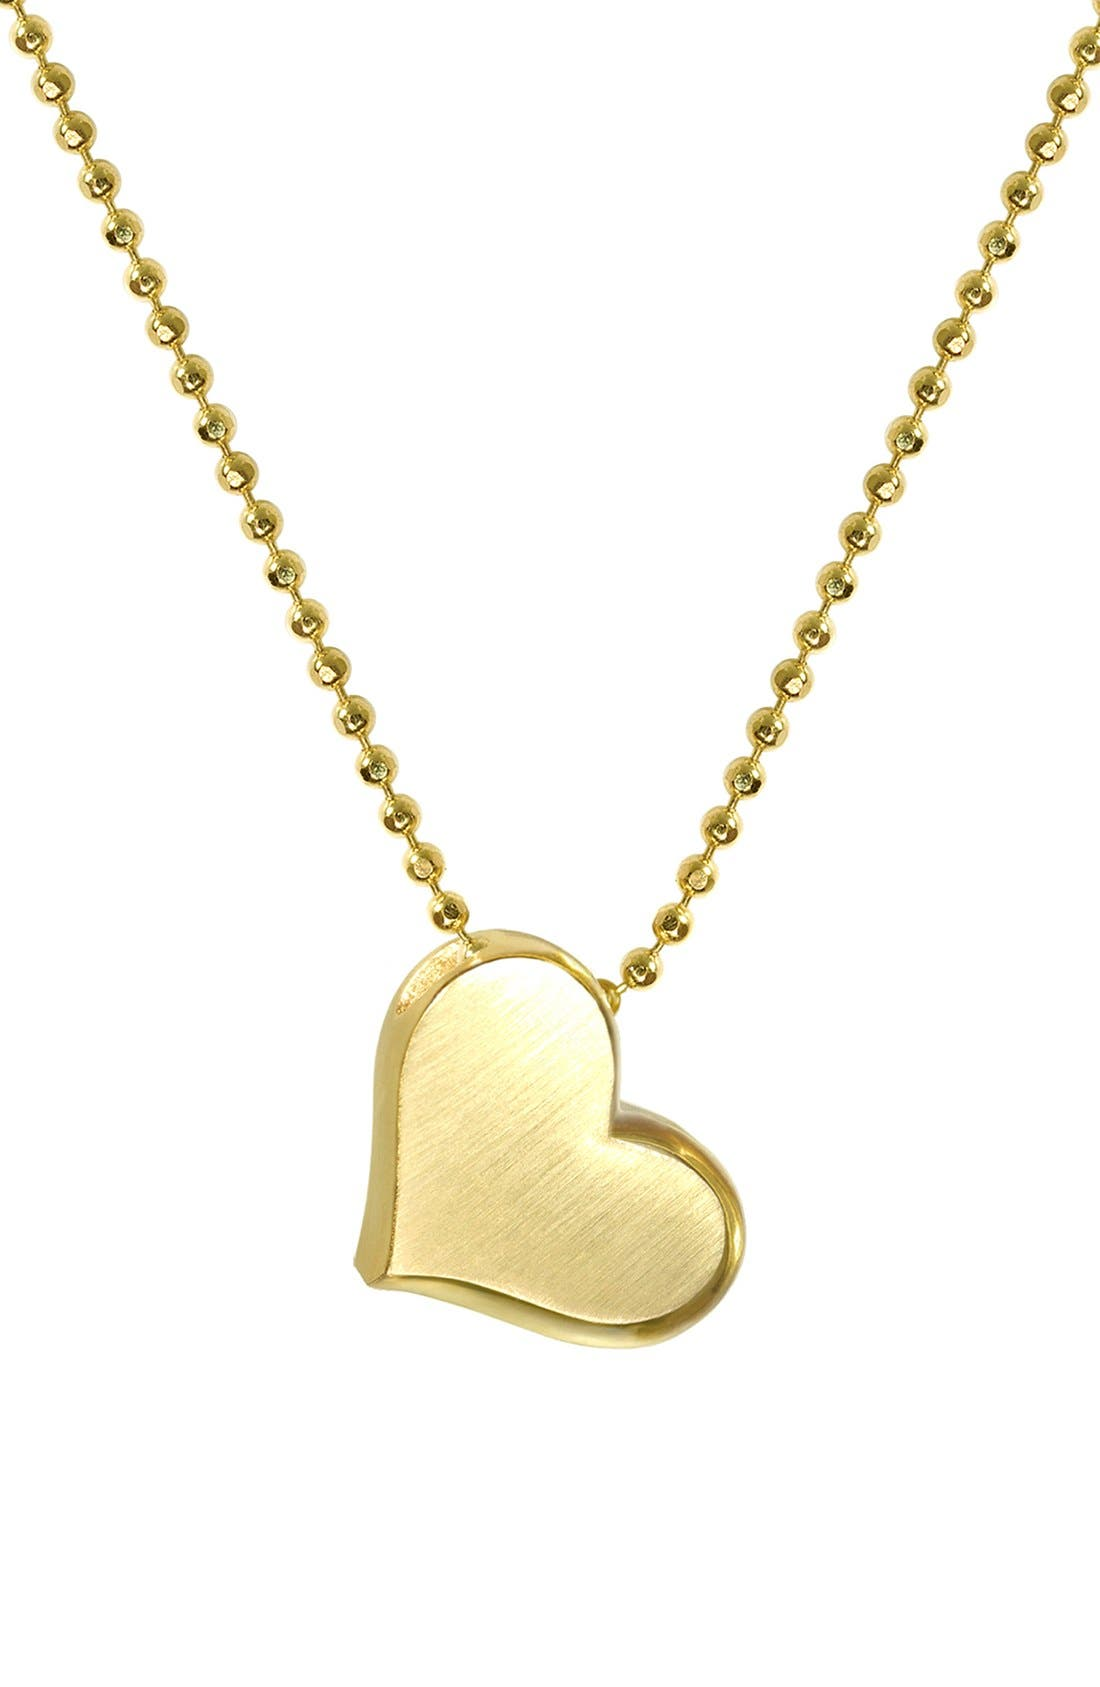 Main Image - Alex Woo 'Little Princess' Heart Pendant Necklace